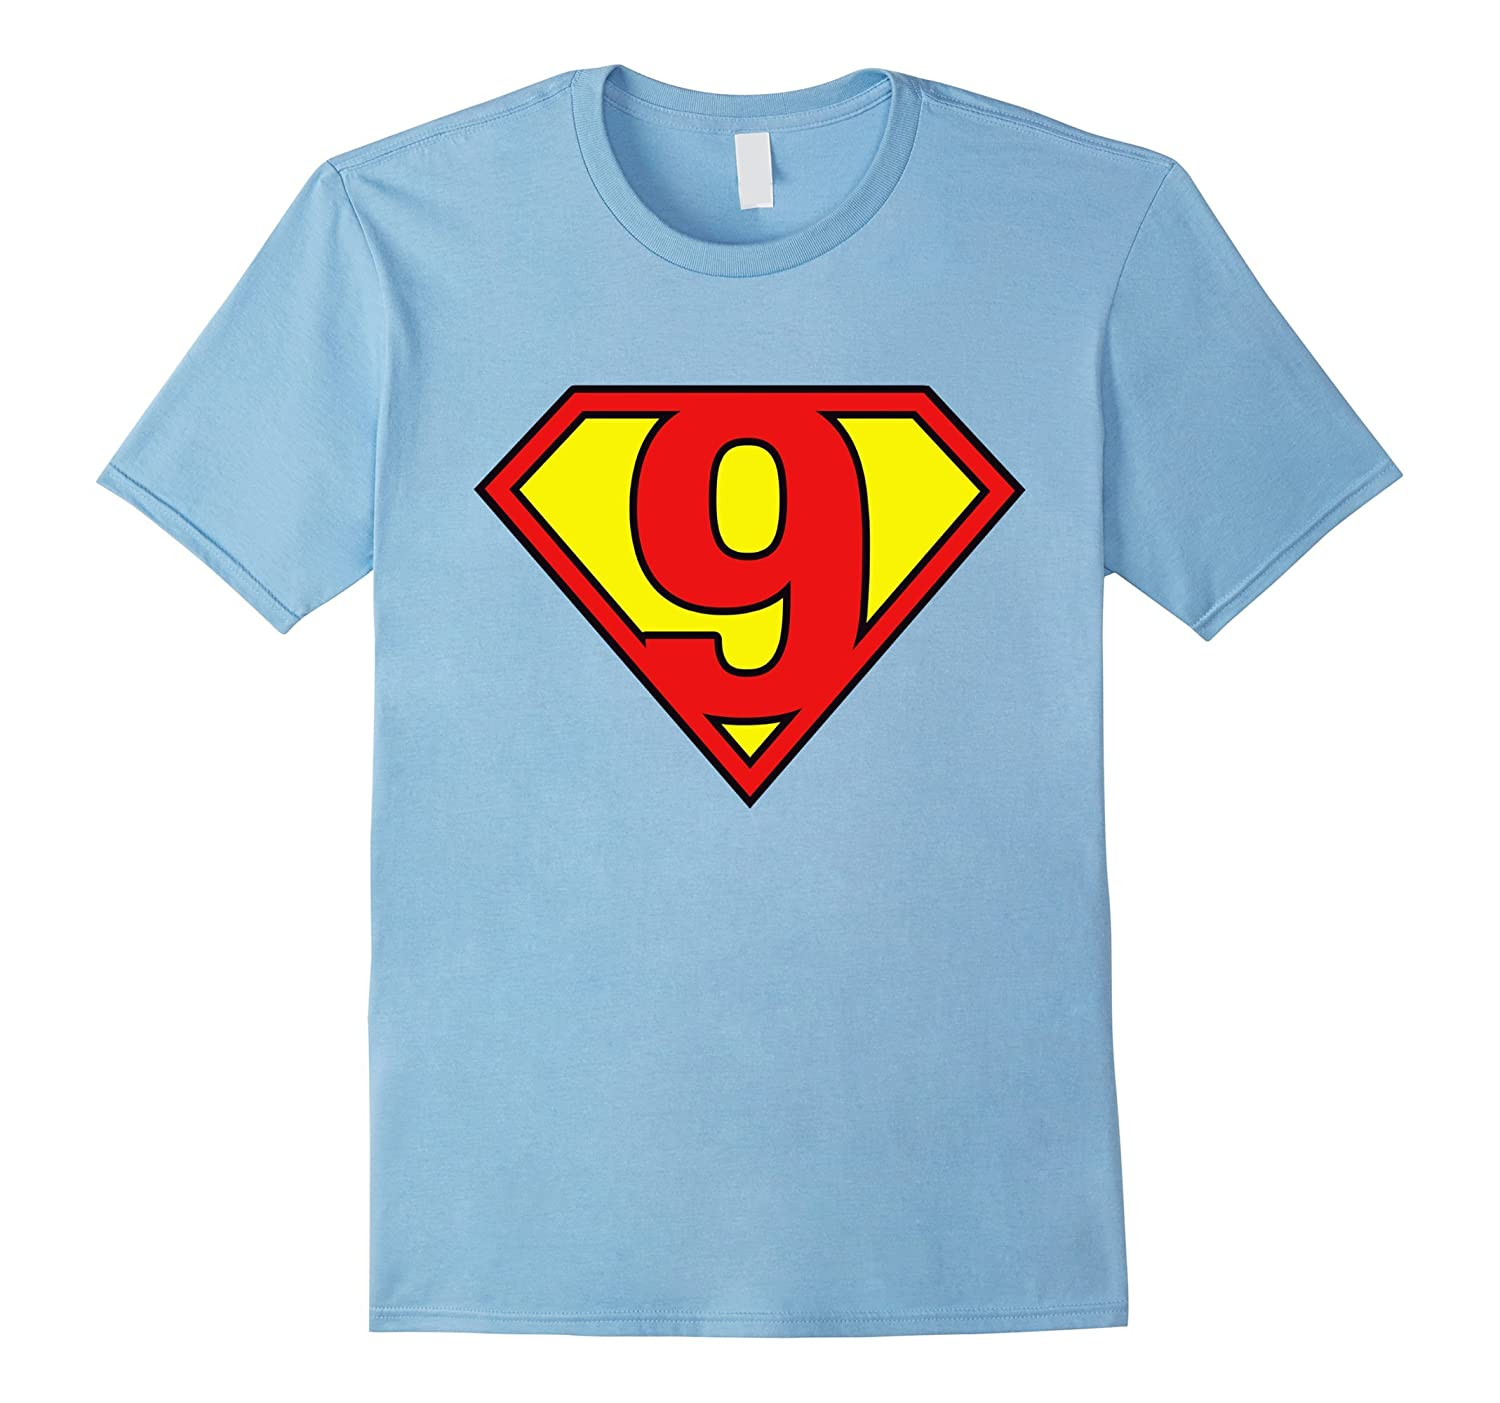 Super Hero 9th Birthday Tshirt Gift 9 Years old Kid Boy Girl